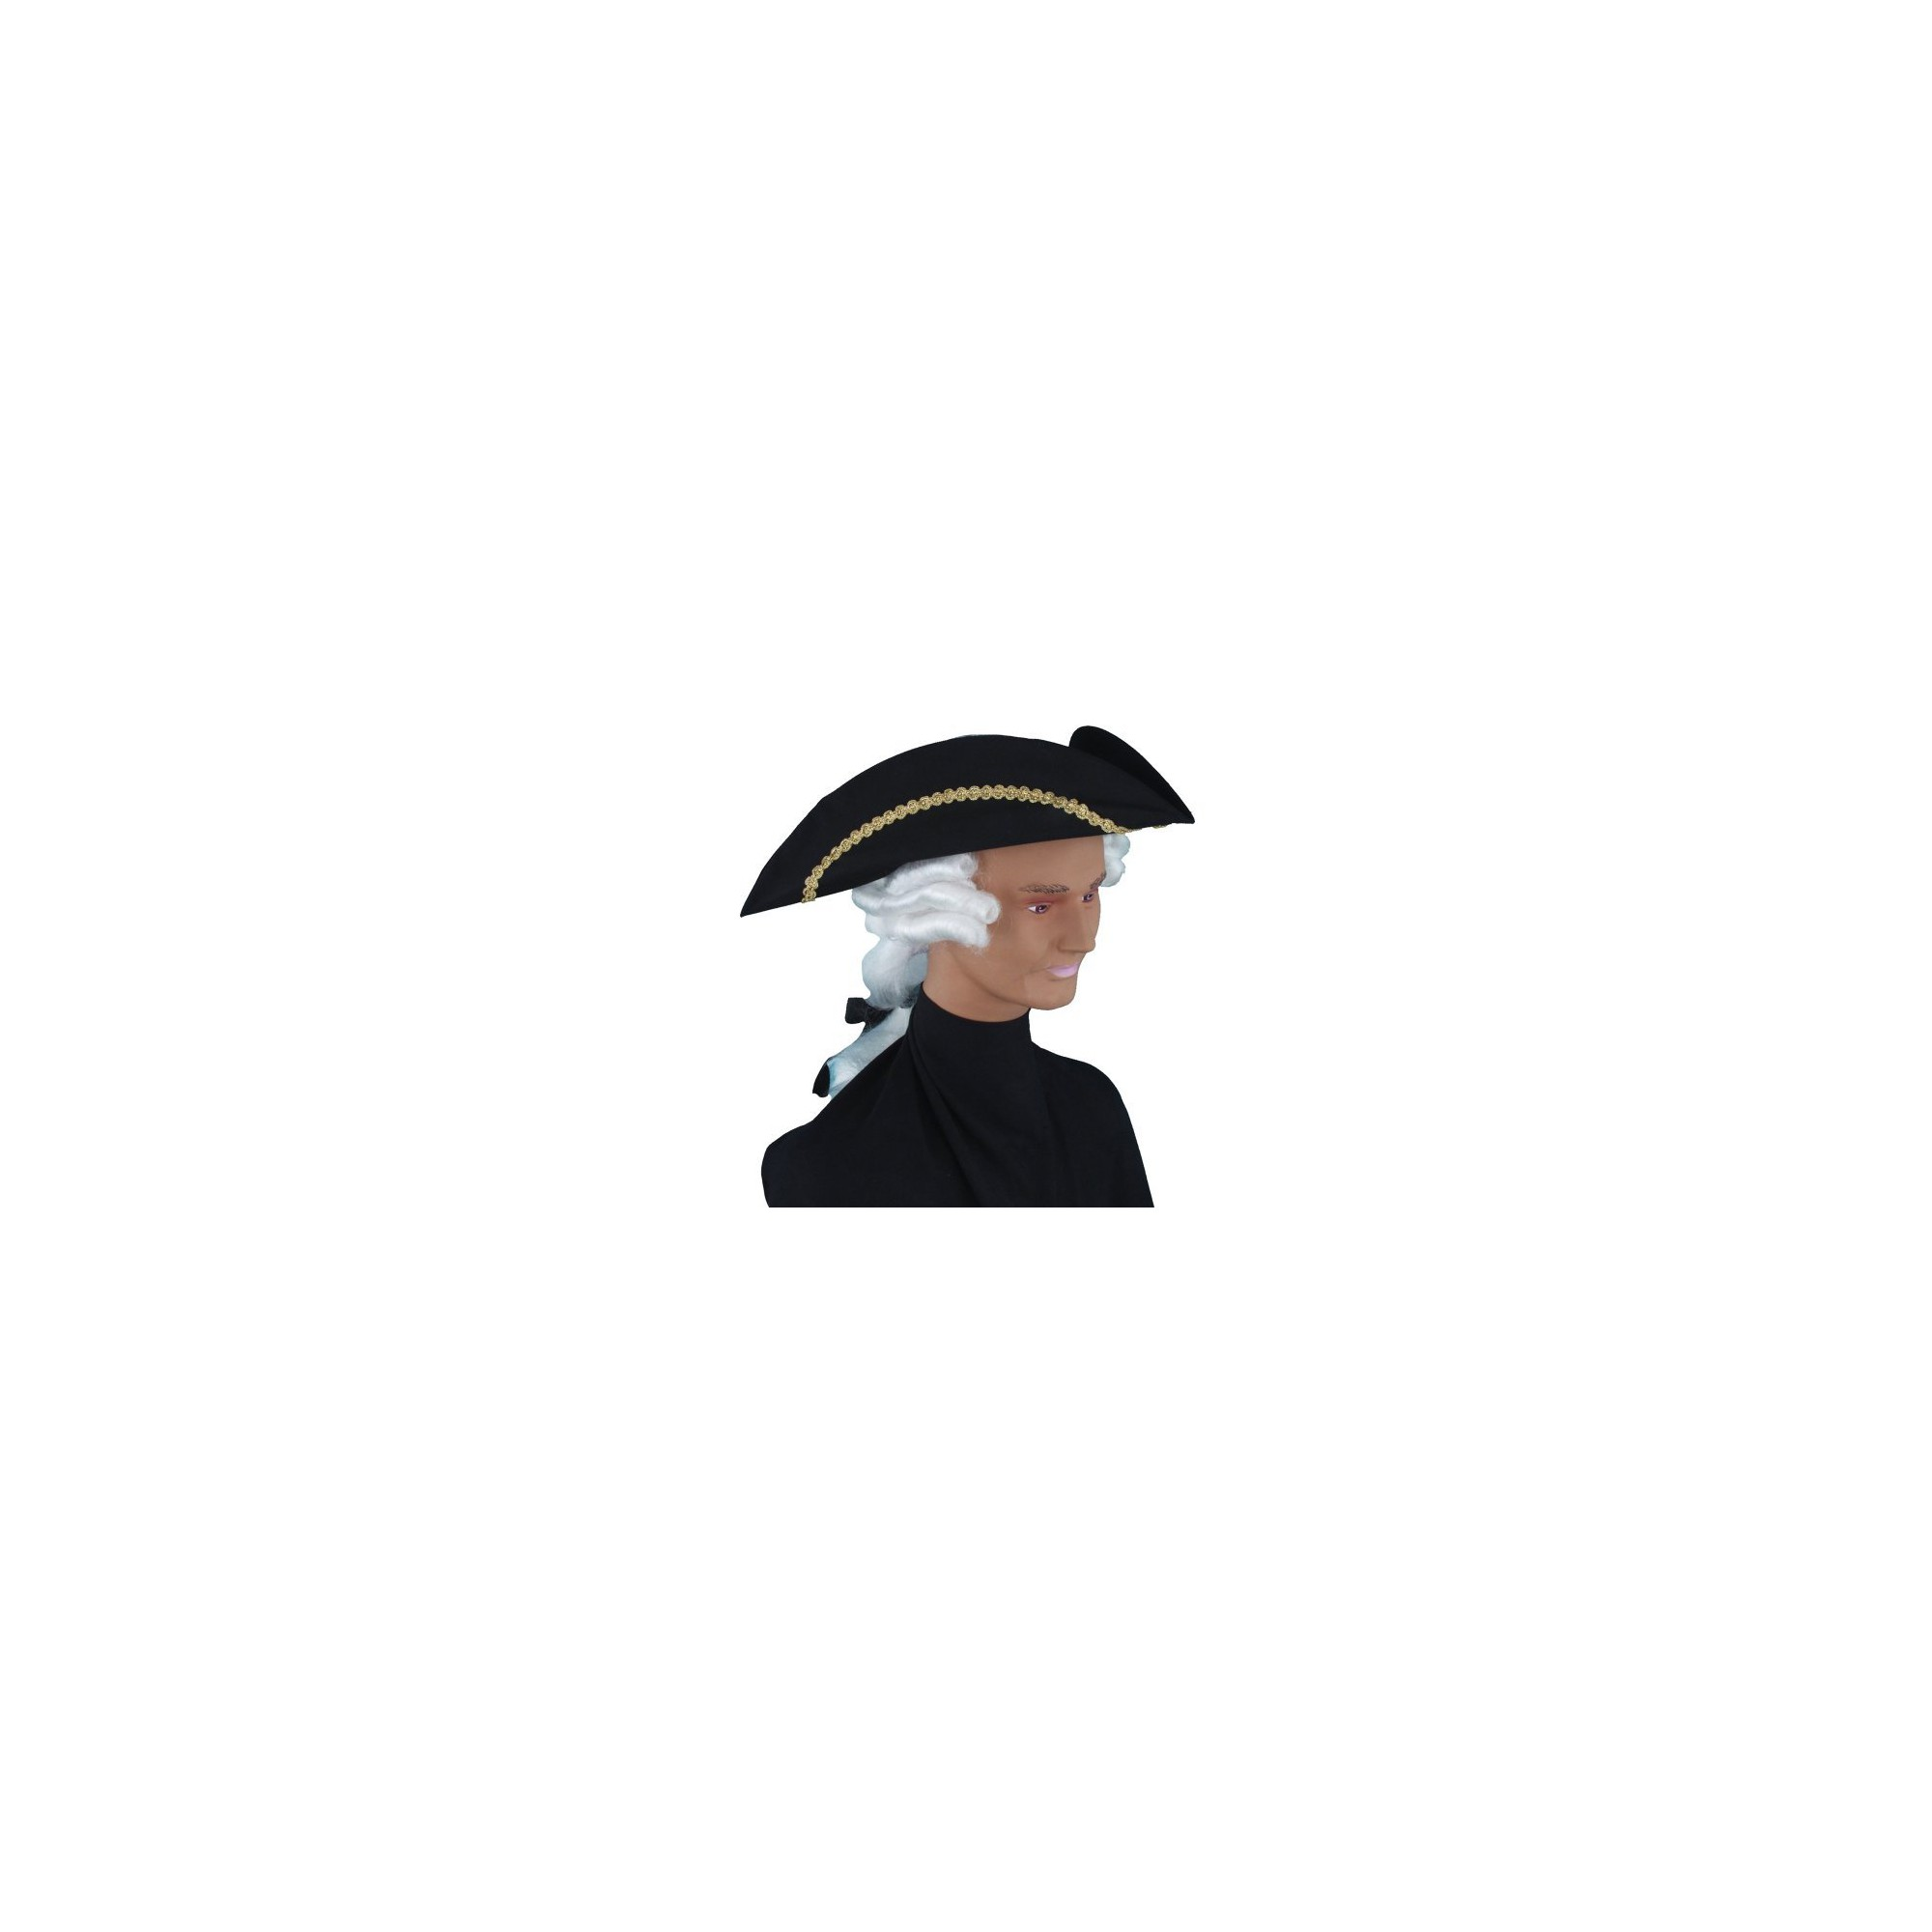 Halloween Kids' Colonial Hat with Wig Costume Accessory, Men's